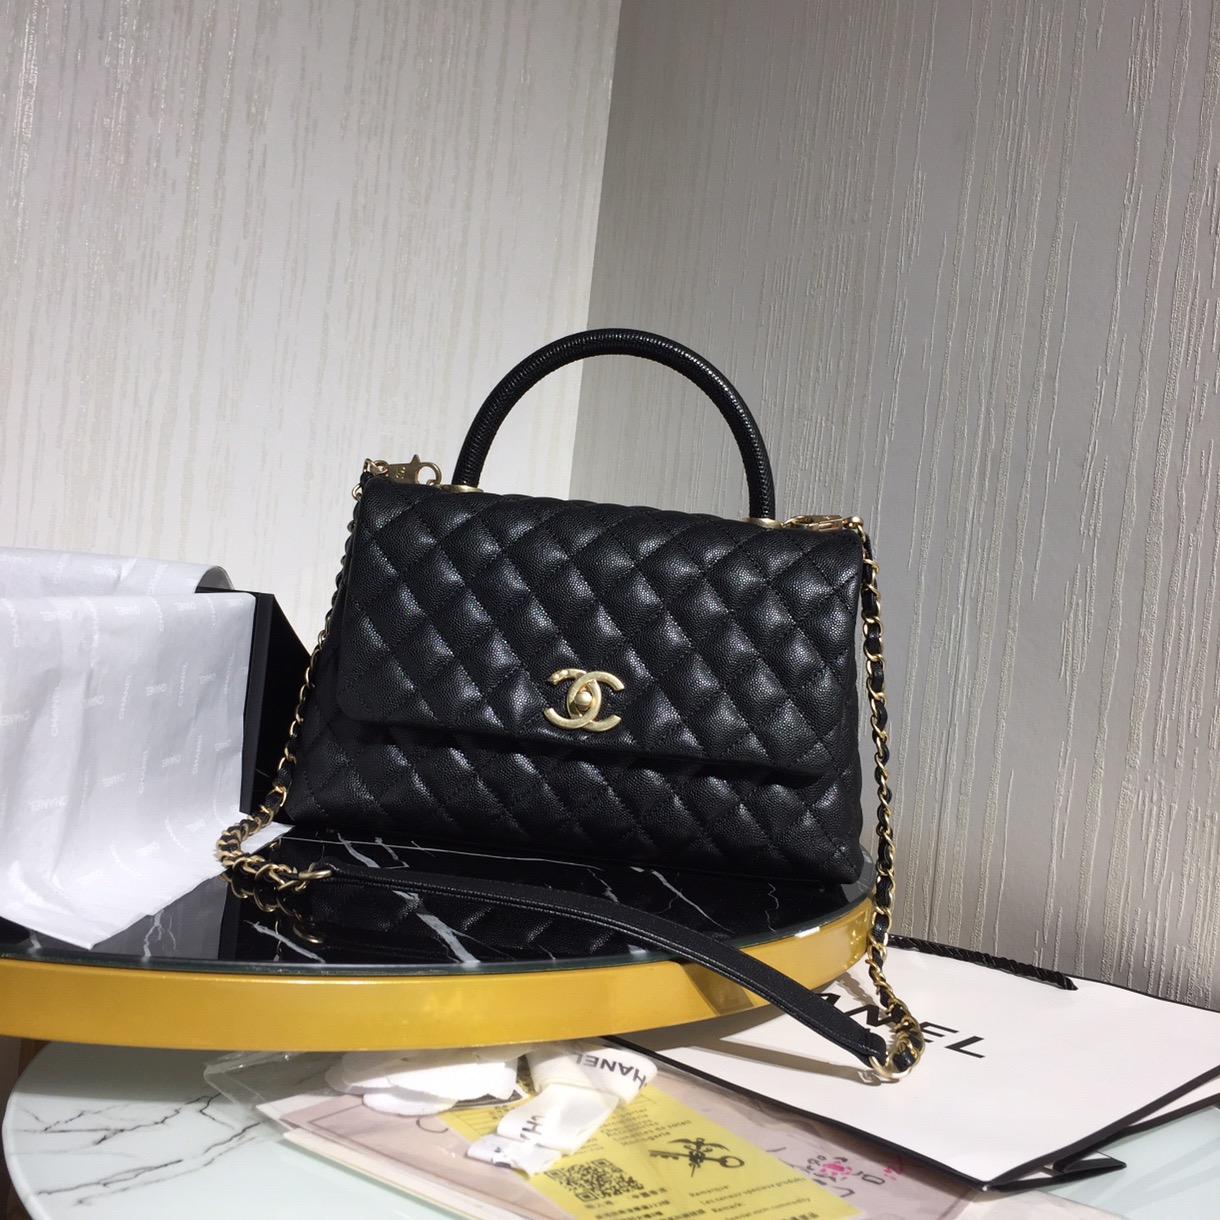 Chanel Flap Bag With Top Handle Black - 3